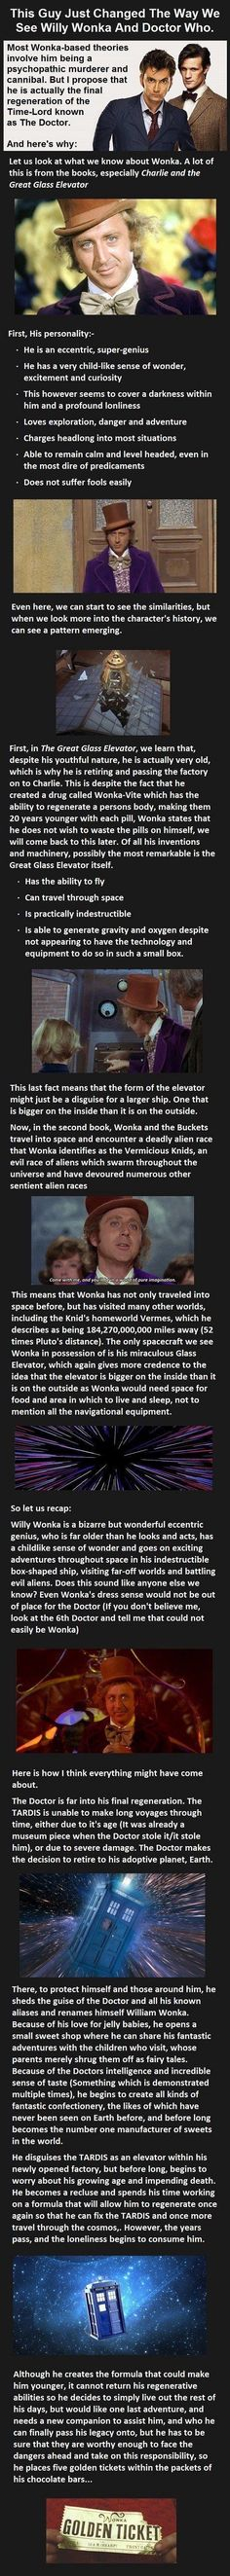 Willy Wonka / Doctor Who theory. I love this.